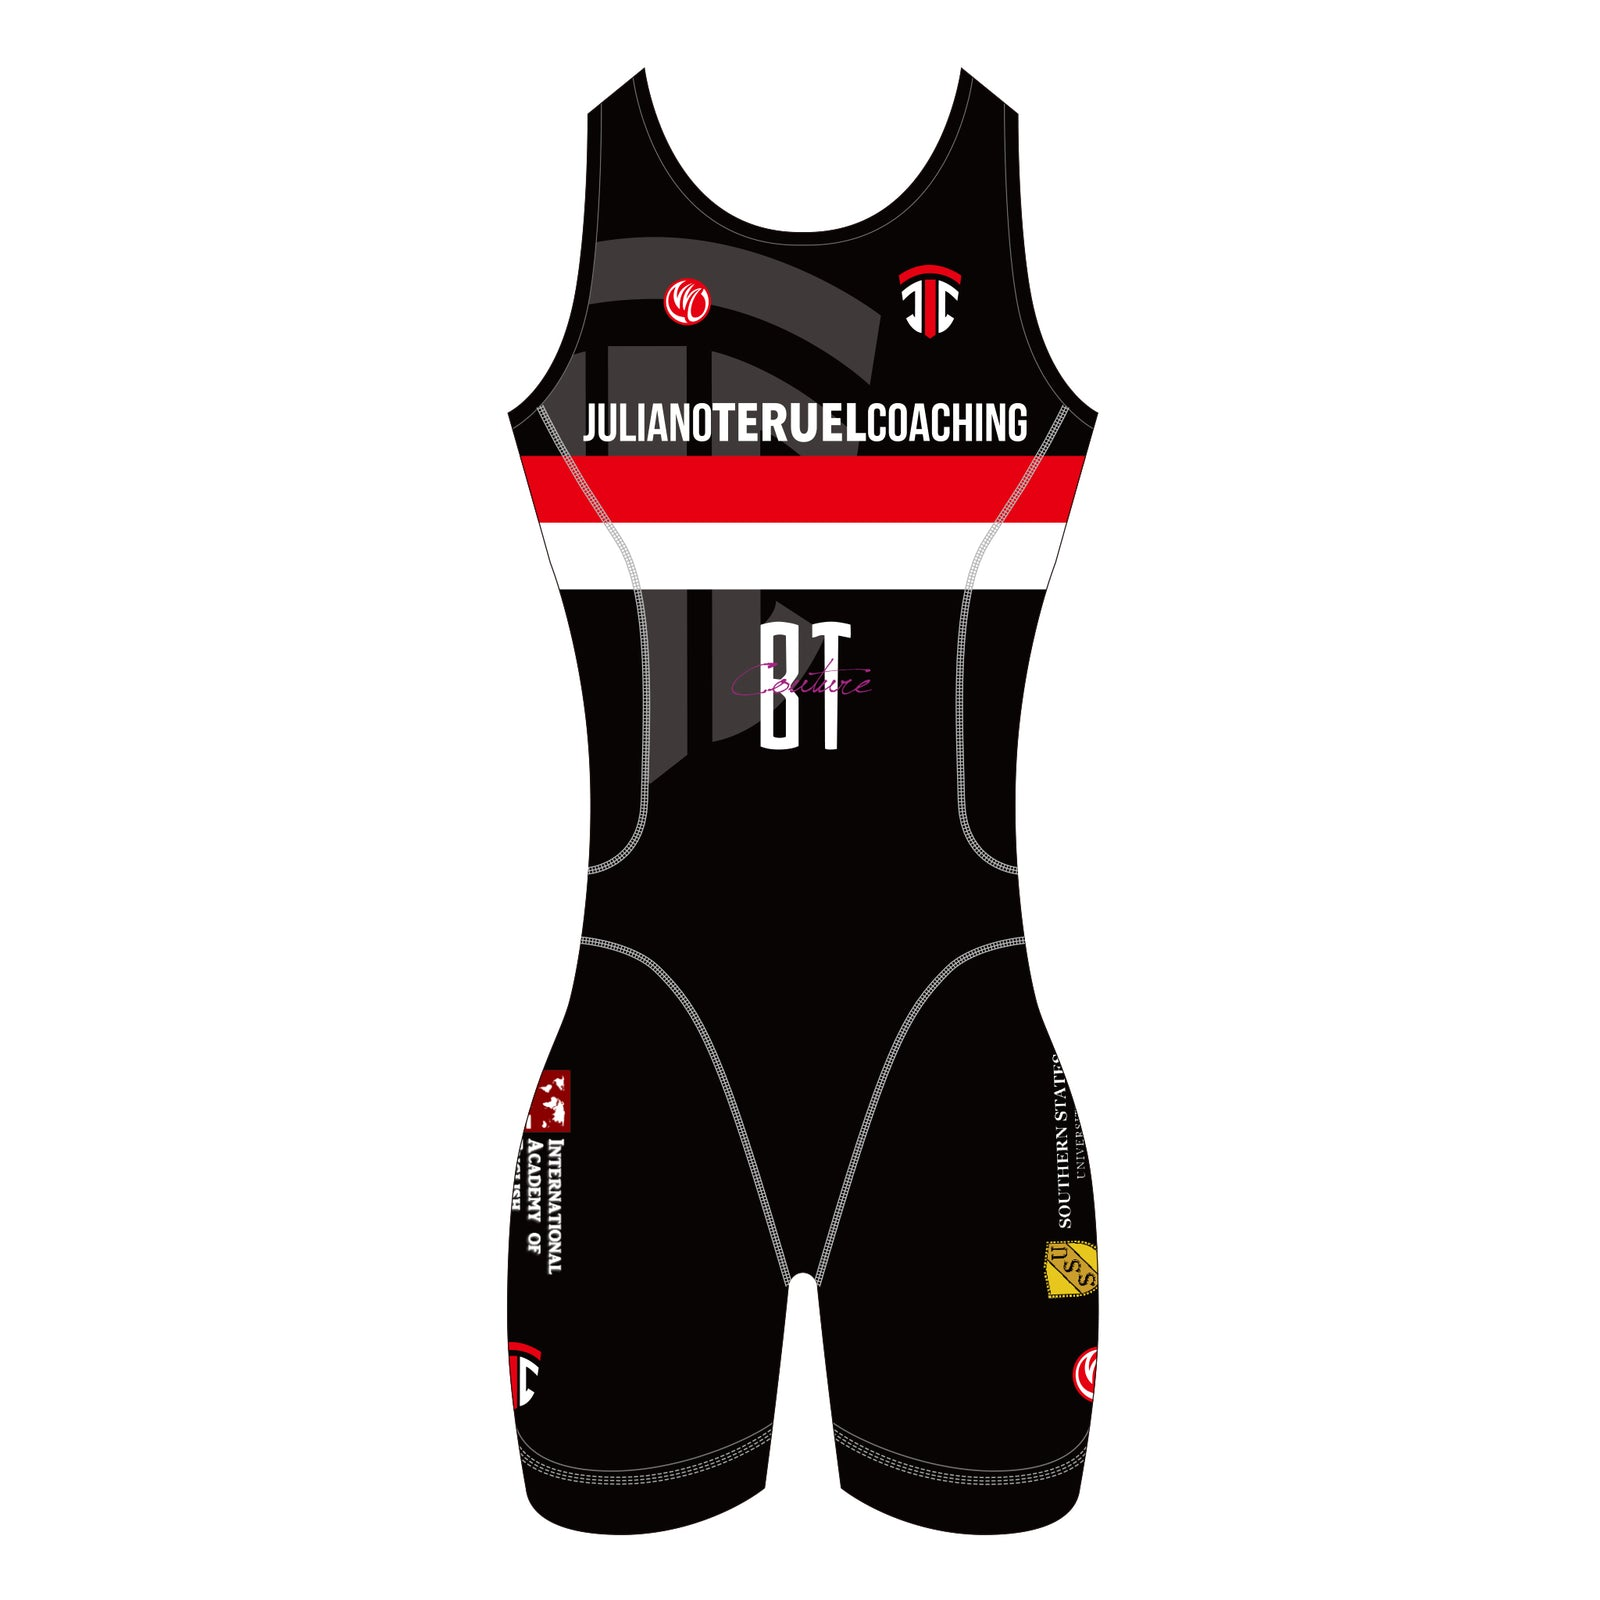 Juliano Teruel WOMEN Gold ITU Tri Suit